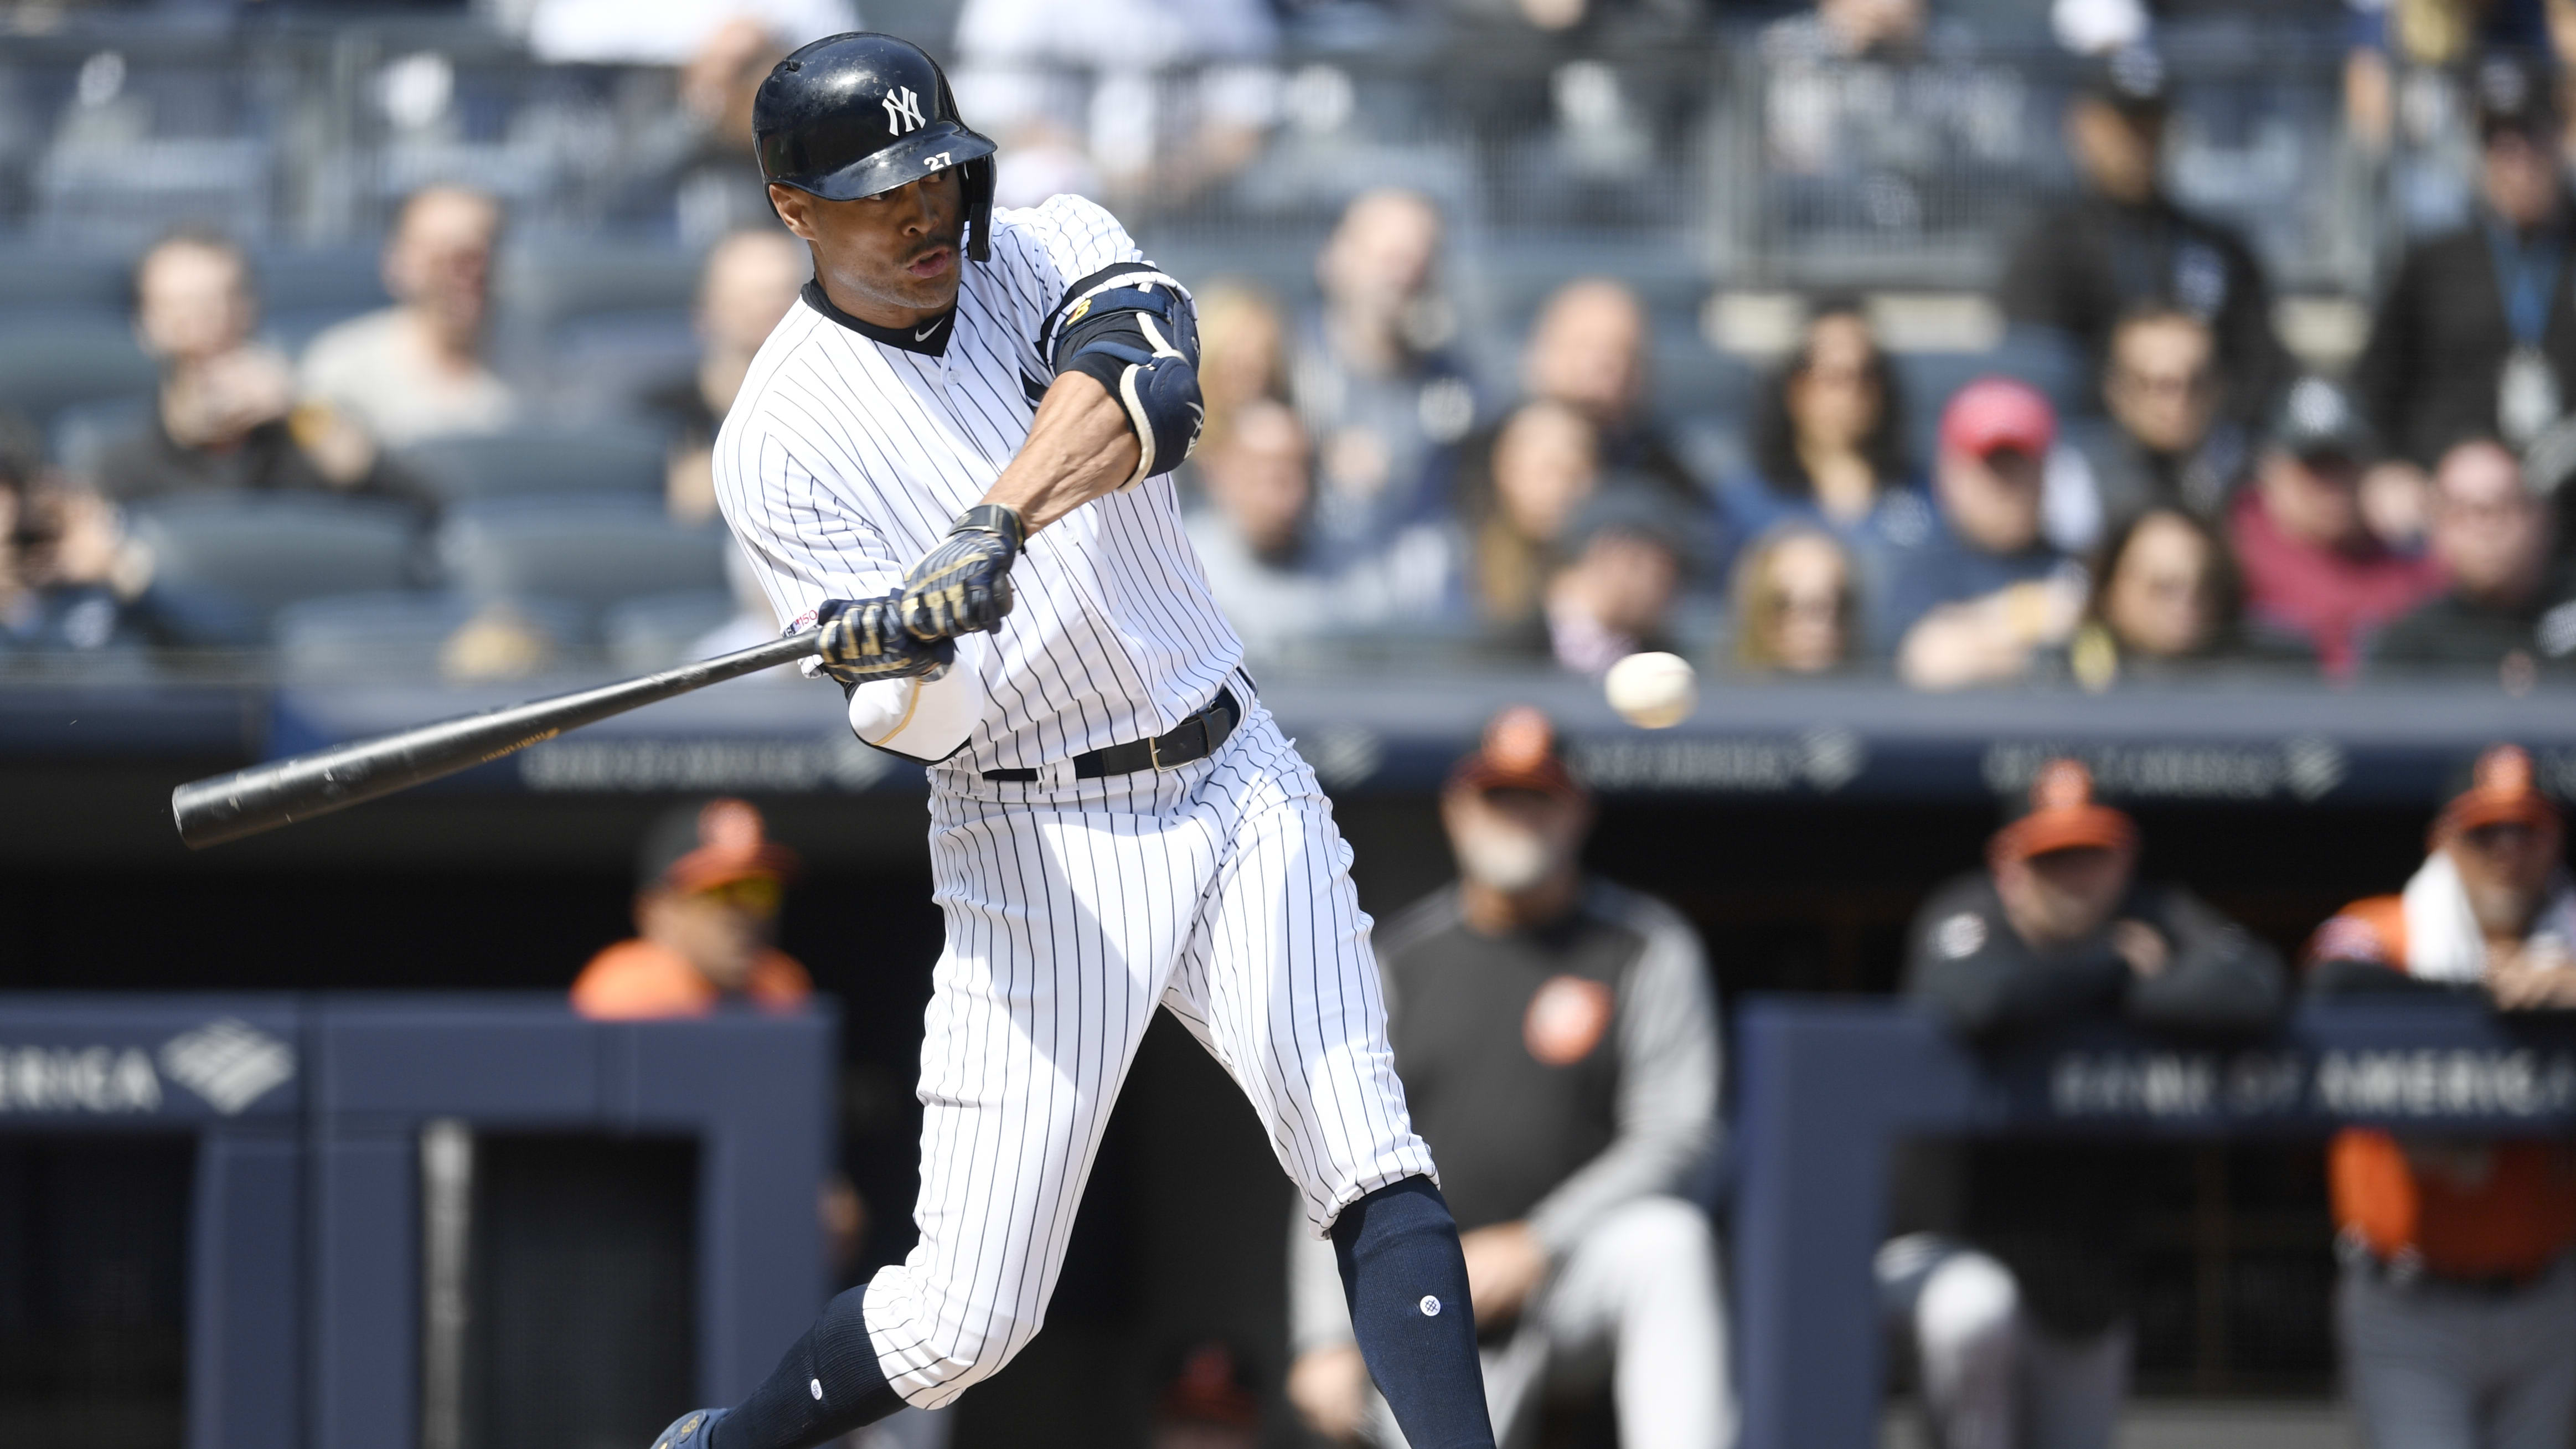 NEW YORK, NEW YORK - MARCH 30: Giancarlo Stanton #27 of the New York Yankees bats during the first inning of the game against the Baltimore Orioles at Yankee Stadium on March 30, 2019 in the Bronx borough of New York City. (Photo by Sarah Stier/Getty Images)